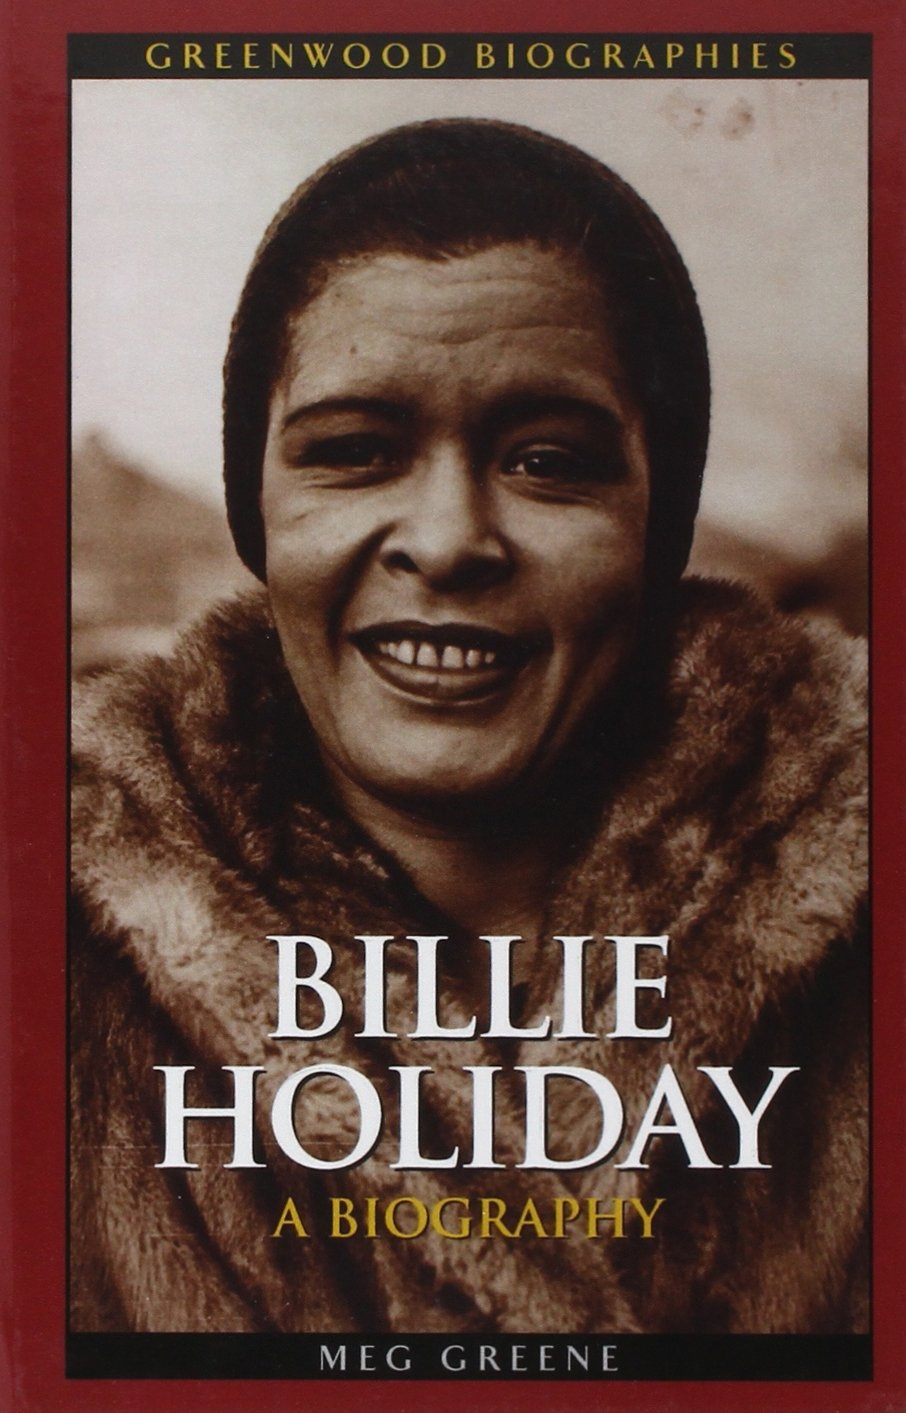 Billie Holiday: A Biography (Greenwood Biographies) ebook